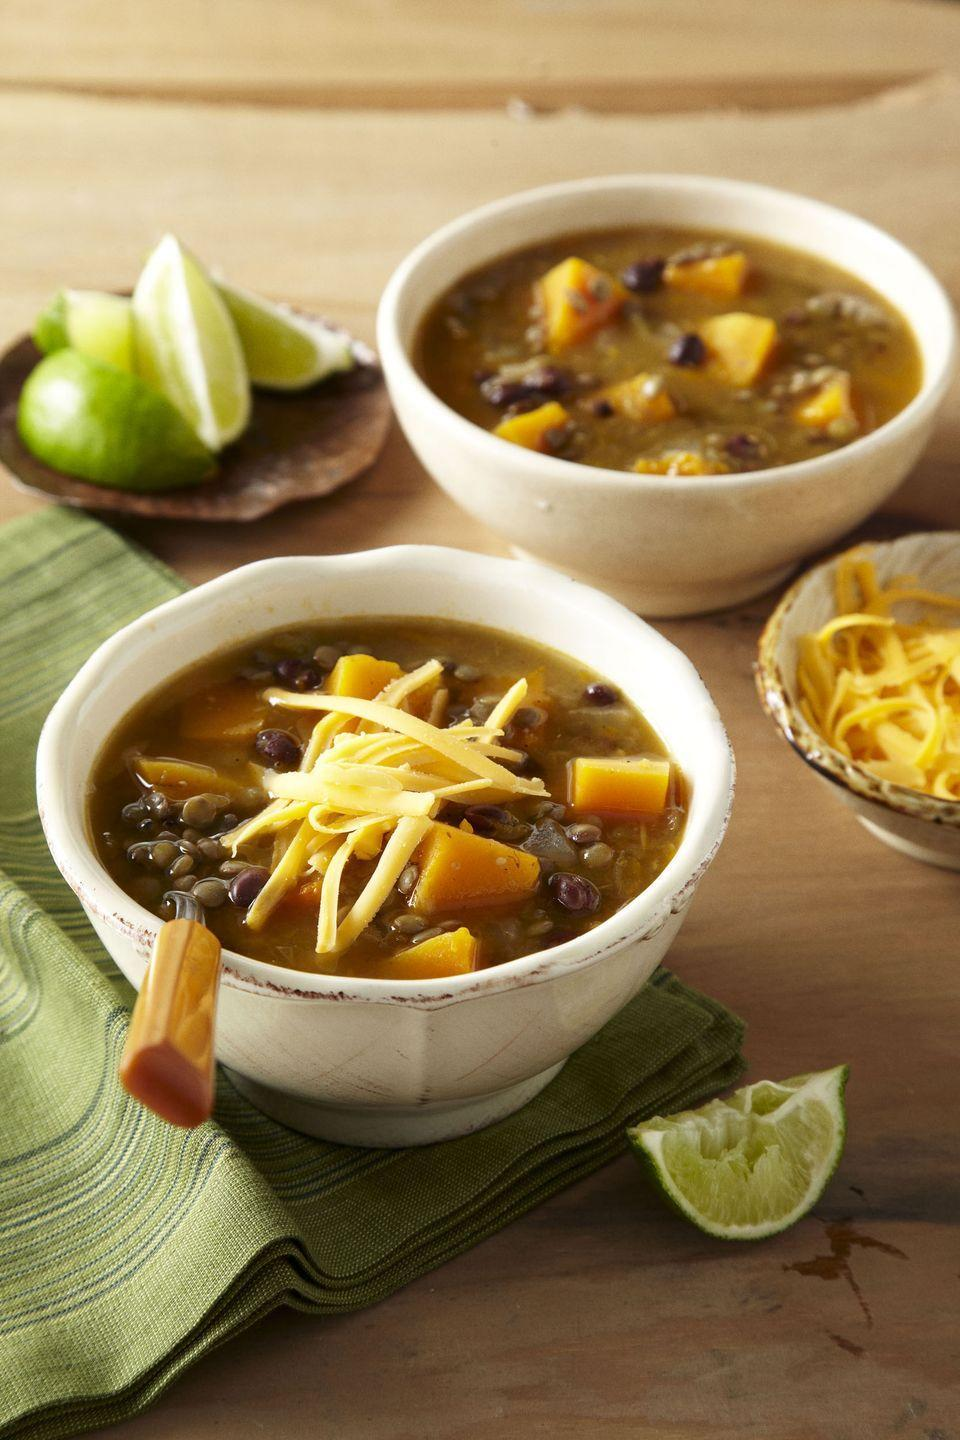 "<p>Load up on this black bean and butternut squash chili for a <a href=""https://www.goodhousekeeping.com/food-recipes/healthy/g908/vegetarian-recipes/"" rel=""nofollow noopener"" target=""_blank"" data-ylk=""slk:vegetarian-friendly option"" class=""link rapid-noclick-resp"">vegetarian-friendly option</a>. </p><p><em><a href=""https://www.goodhousekeeping.com/food-recipes/a14949/white-chili-black-beans-recipe-ghk0313/"" rel=""nofollow noopener"" target=""_blank"" data-ylk=""slk:Get the recipe for White Chili With Black Beans »"" class=""link rapid-noclick-resp"">Get the recipe for White Chili With Black Beans »</a></em></p>"